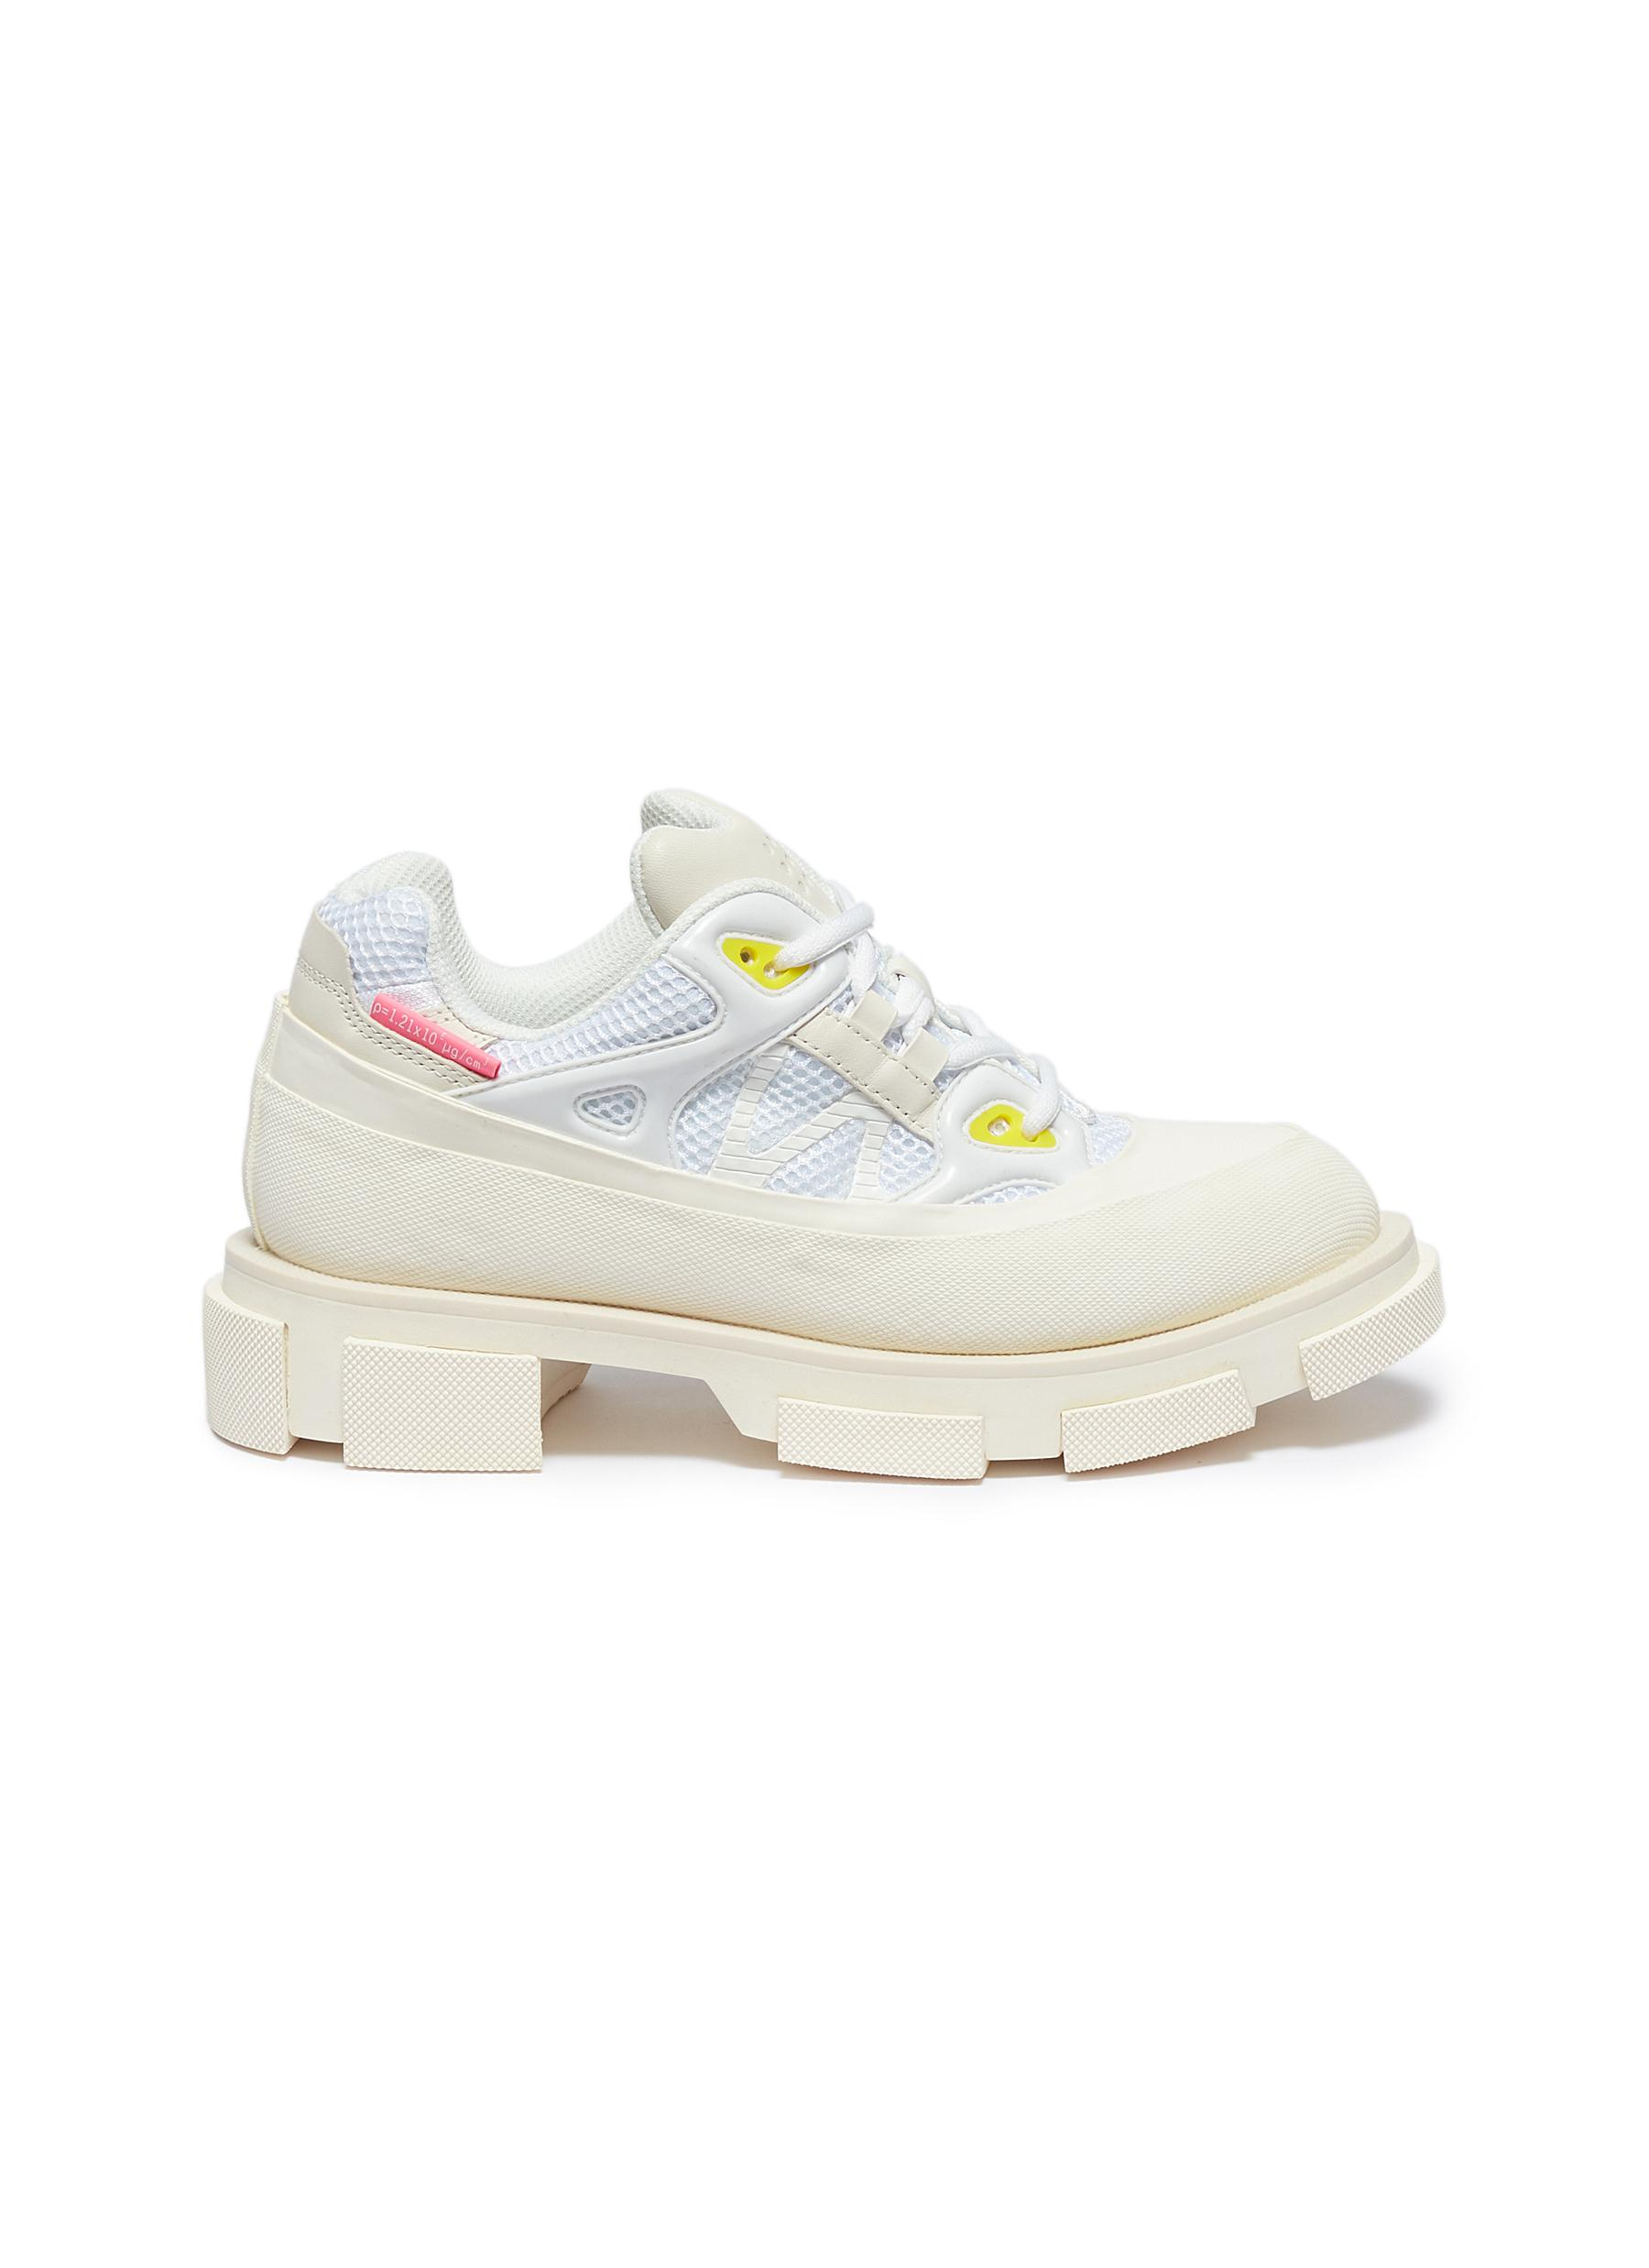 Gao Runner web panelled sneakers by both